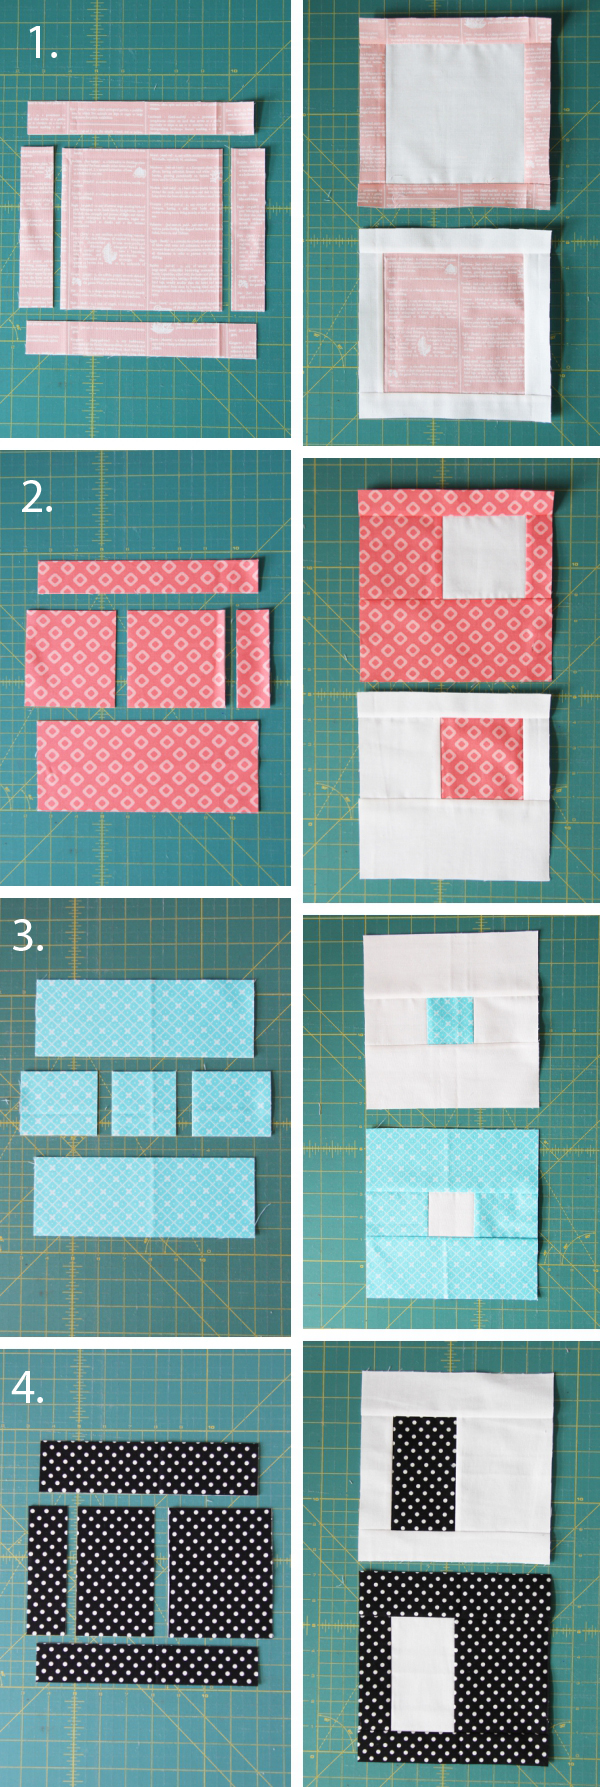 Easy Stack, Cut, and Sew Blocks